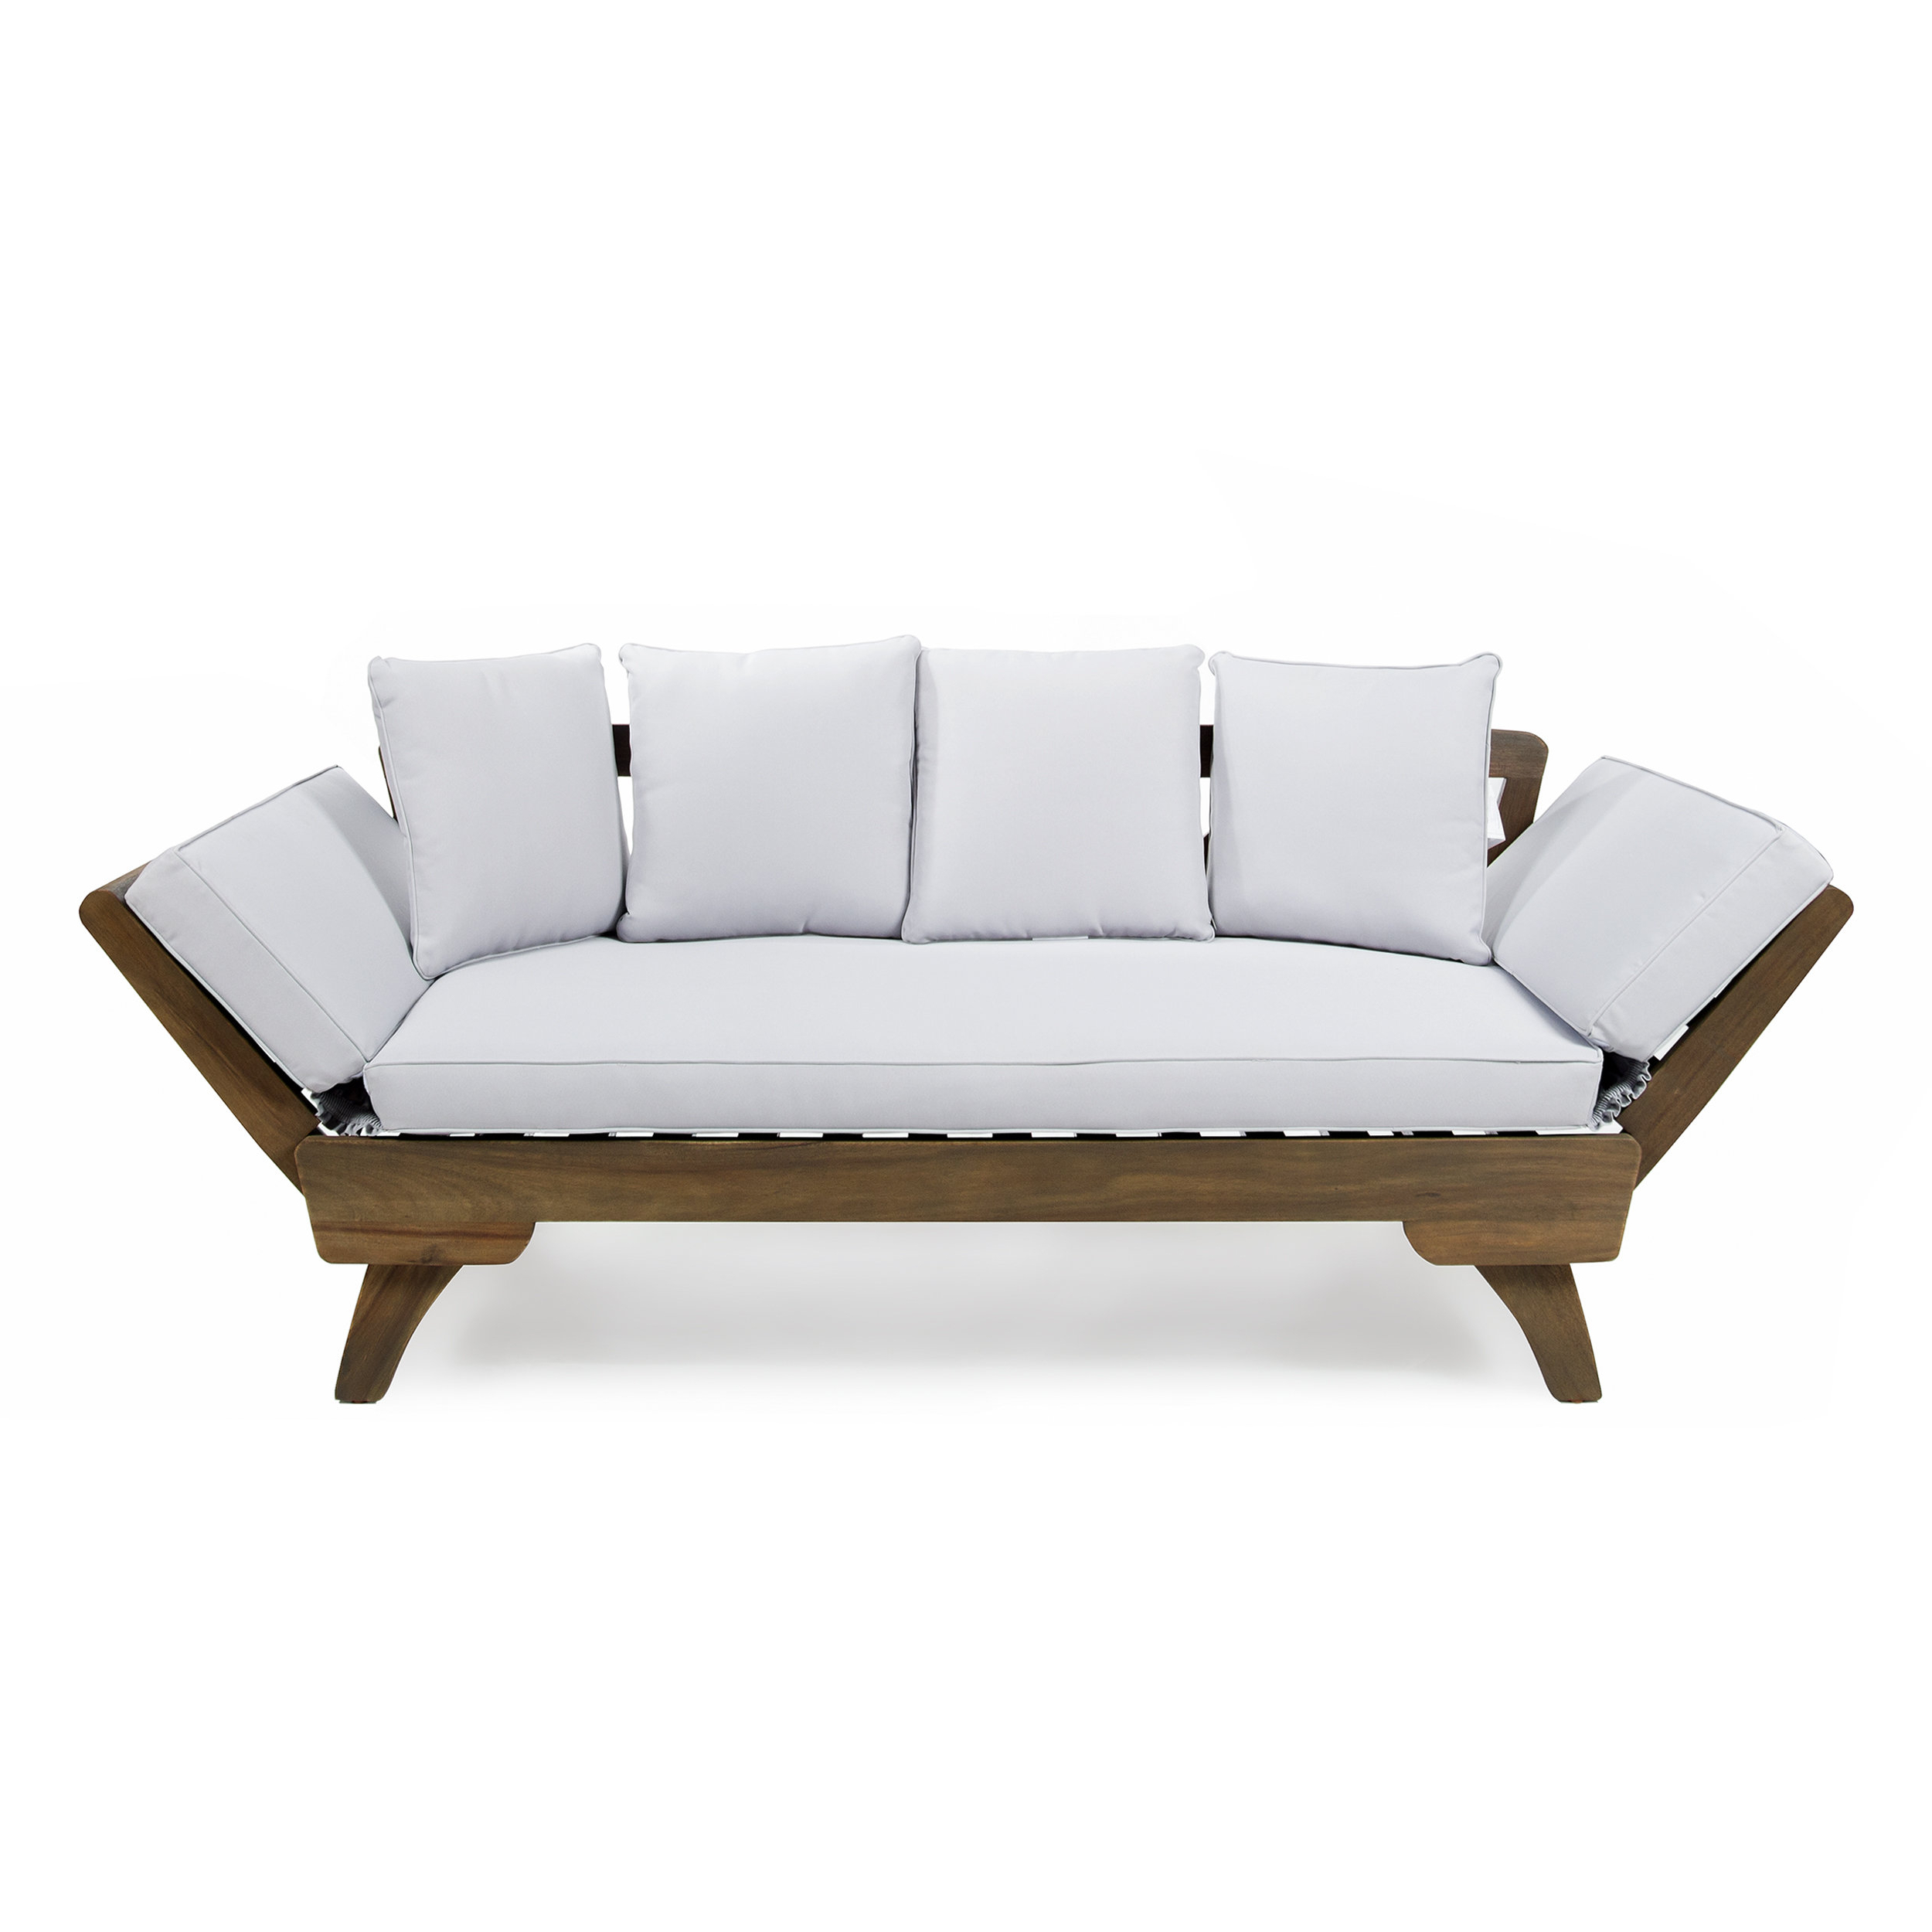 Clary Teak Lounge Patio Daybeds With Cushion Intended For Most Up To Date Union Rustic Ellanti Teak Patio Daybed With Cushions (View 6 of 20)